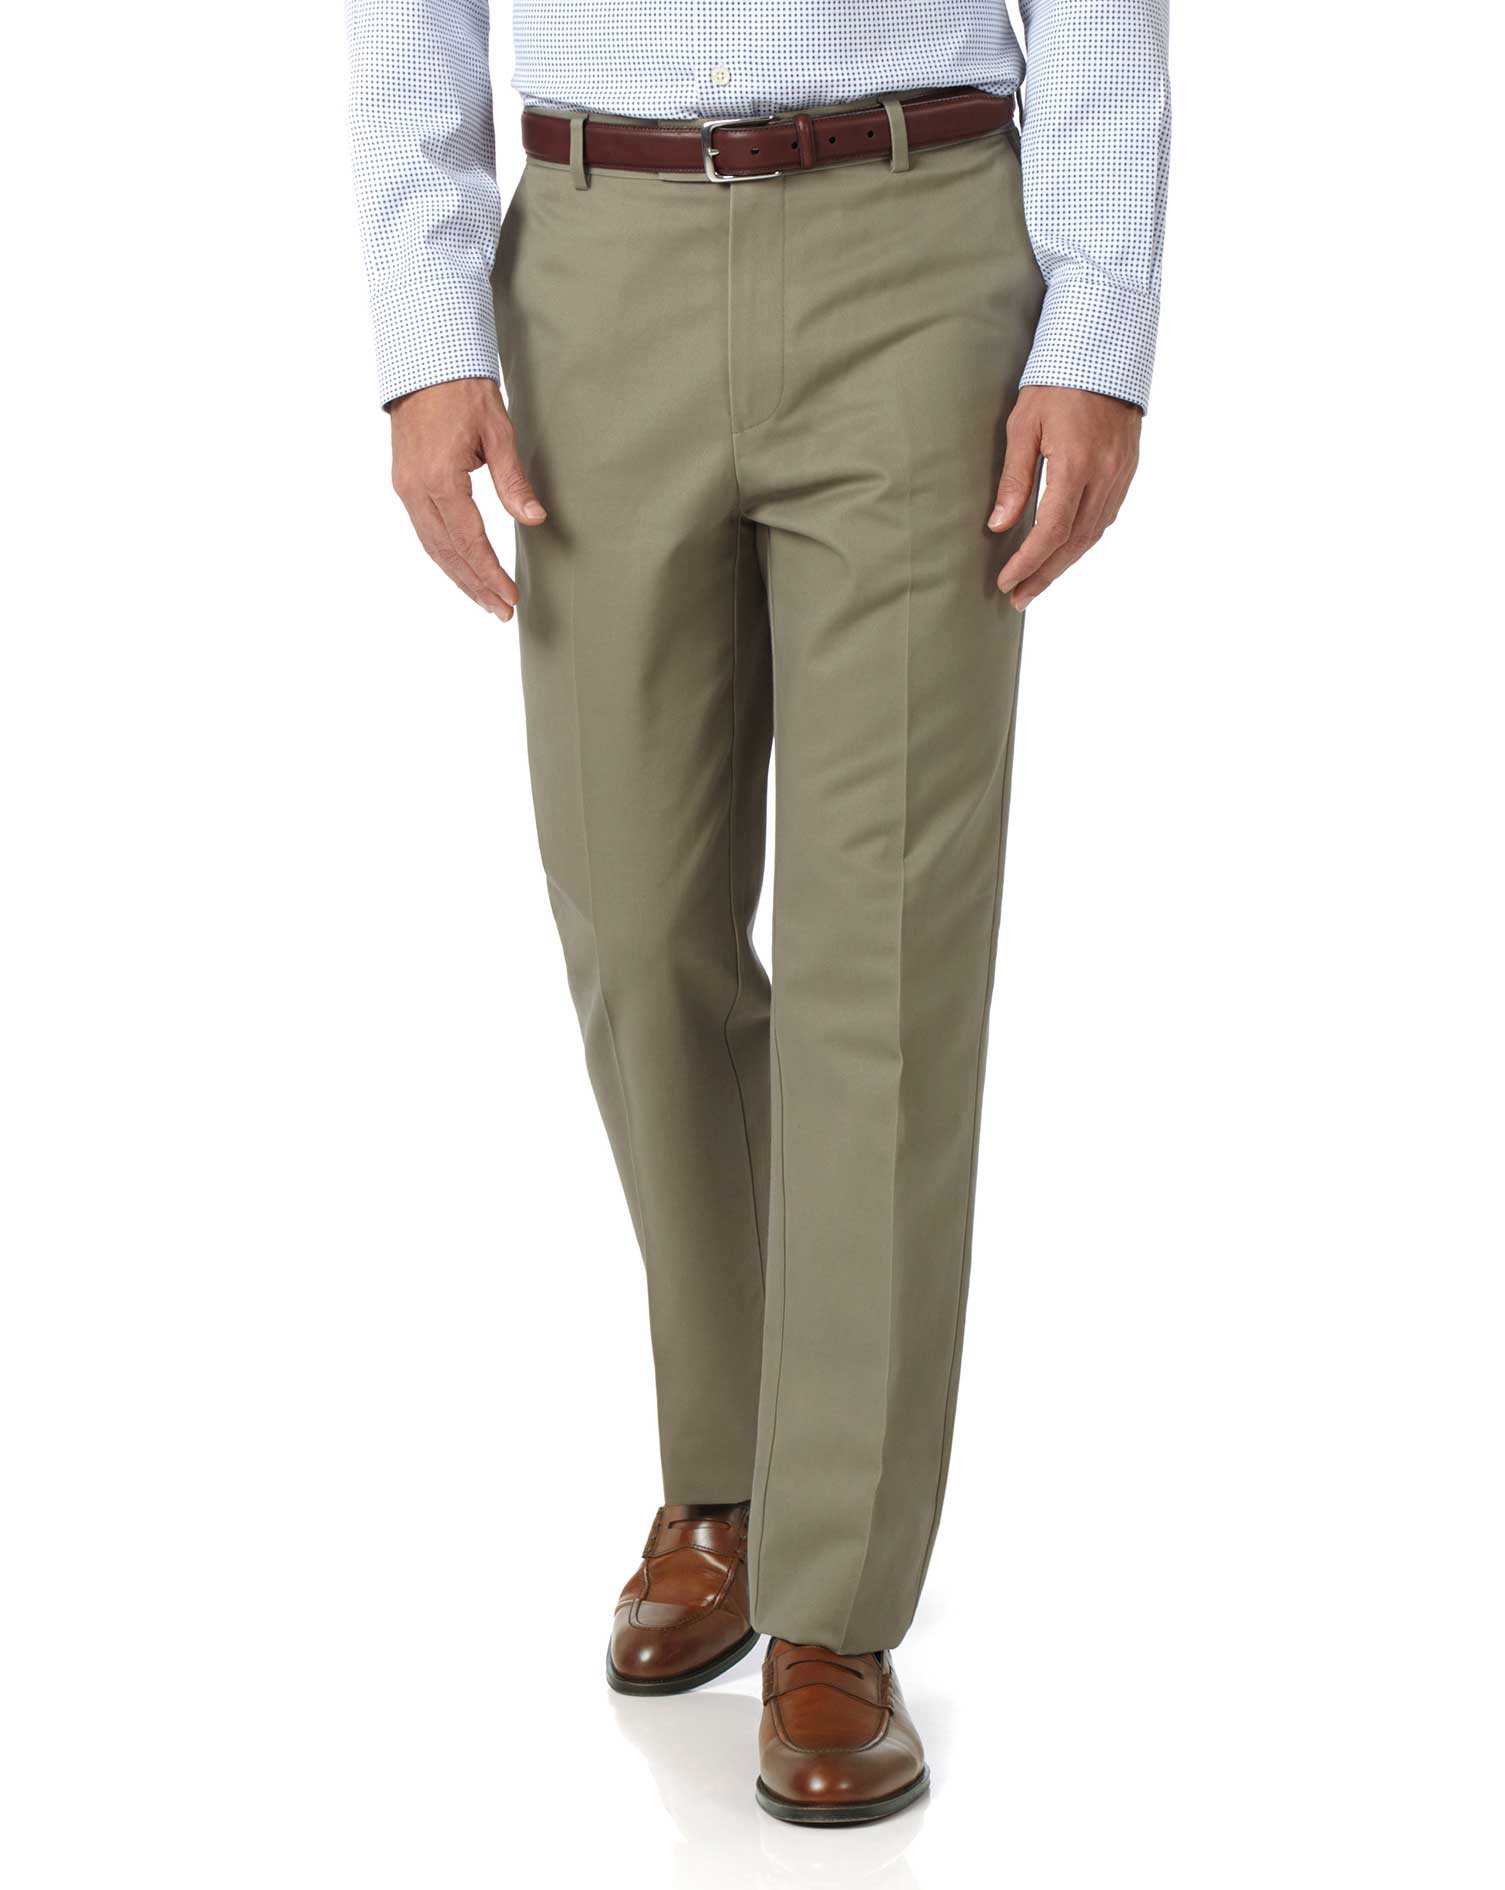 Olive Classic Fit Flat Front Non-Iron Cotton Chino Trousers Size W40 L30 by Charles Tyrwhitt